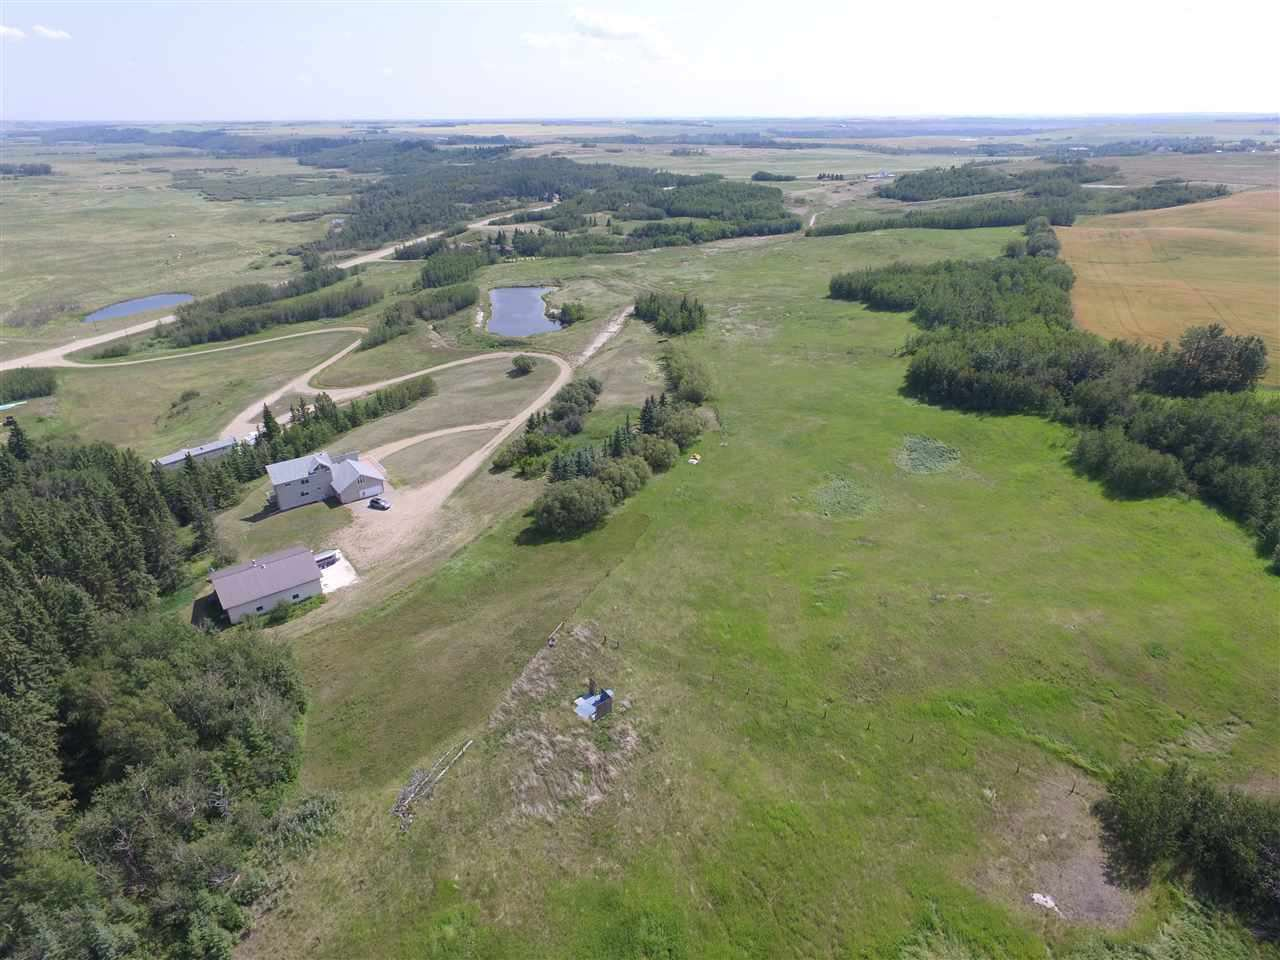 Photo 29: Photos: 462082B Hwy 822: Rural Wetaskiwin County House for sale : MLS®# E4170309